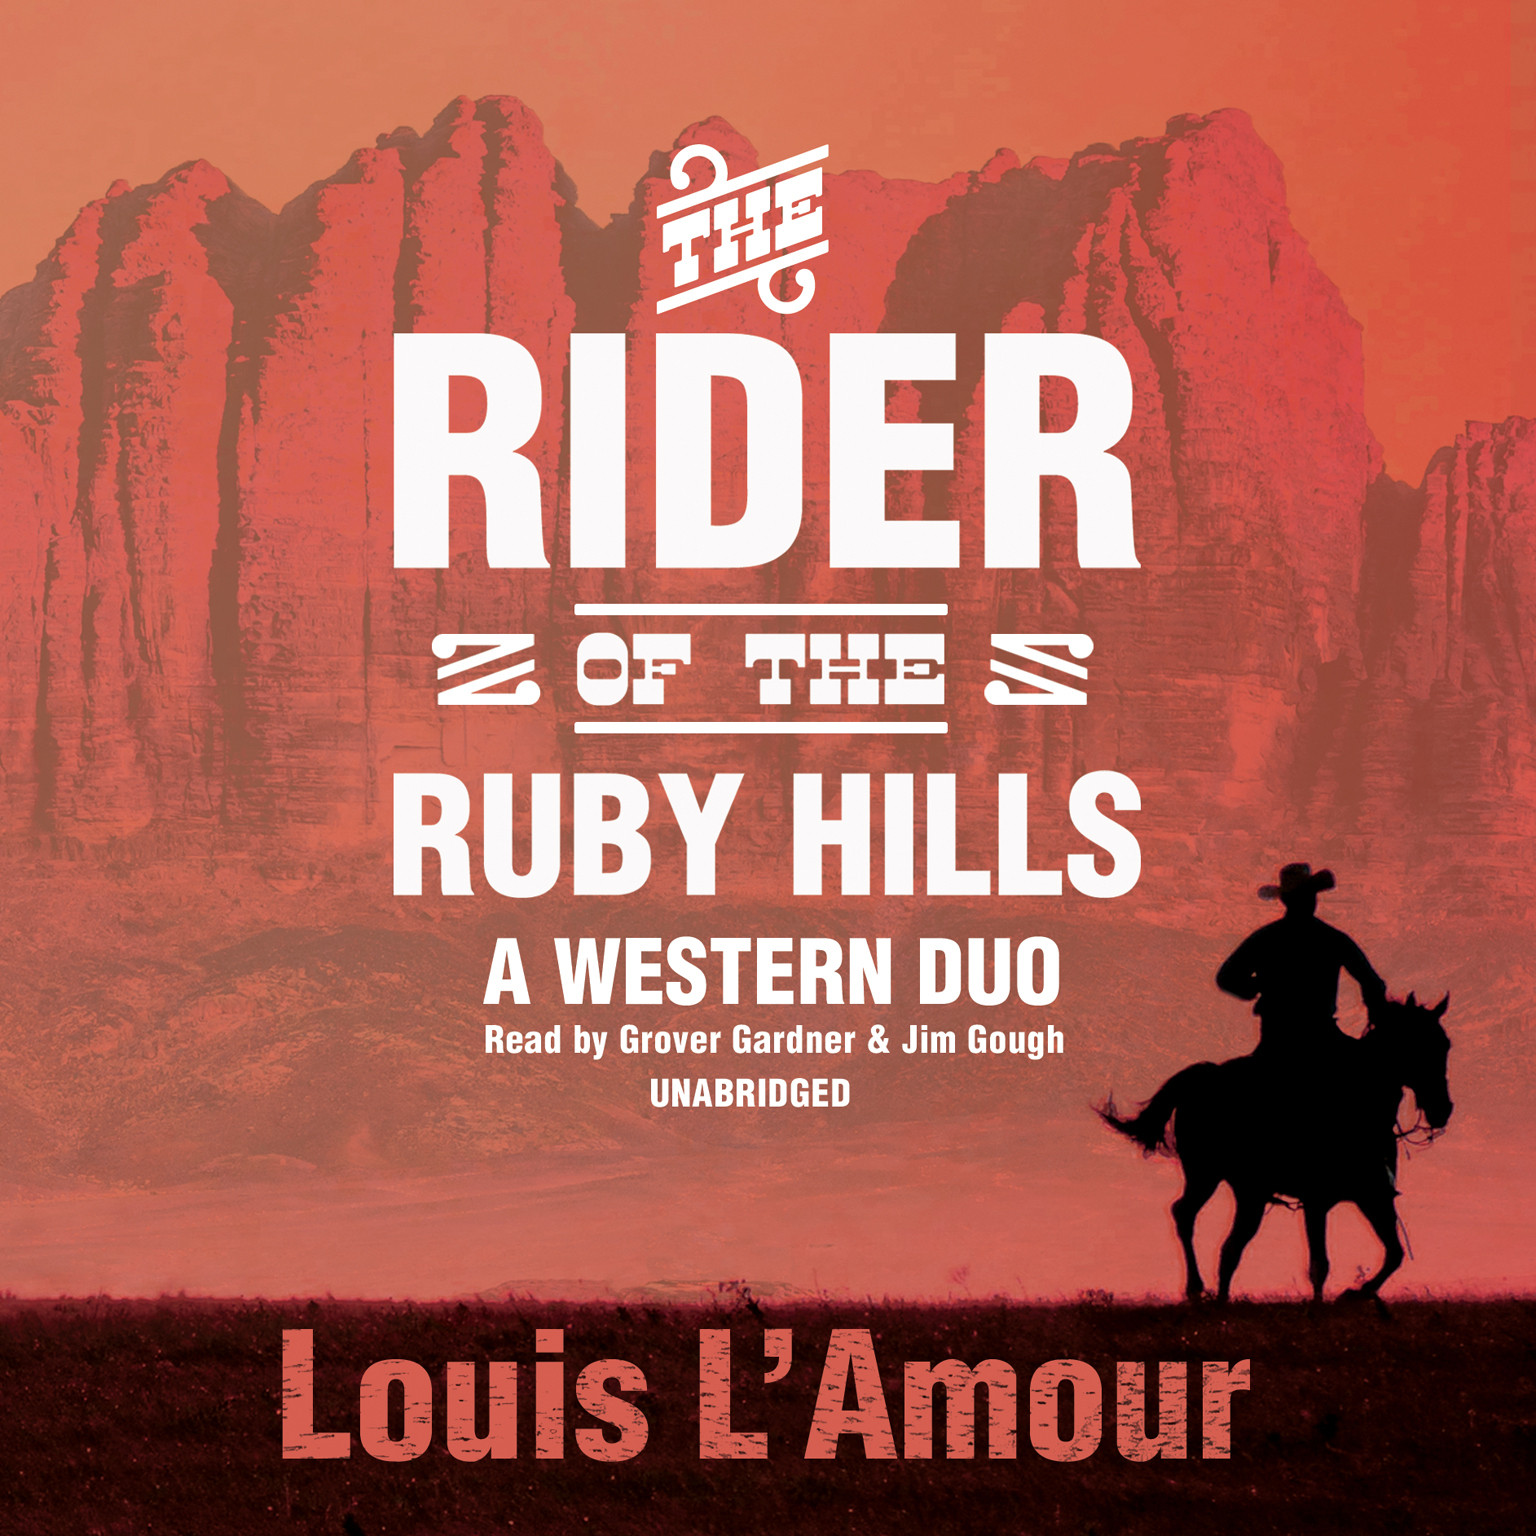 Printable The Rider of the Ruby Hills: A Western Duo Audiobook Cover Art